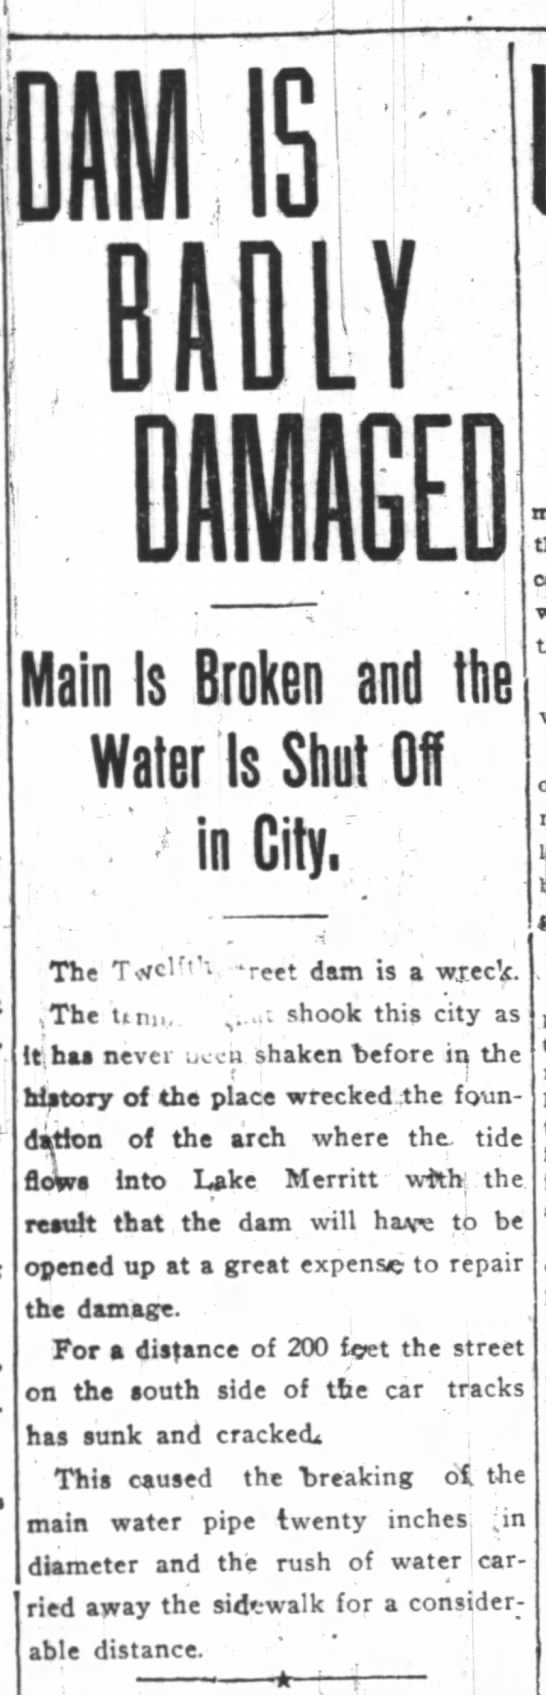 12th St. Dam damaged in 1906 earthquake -